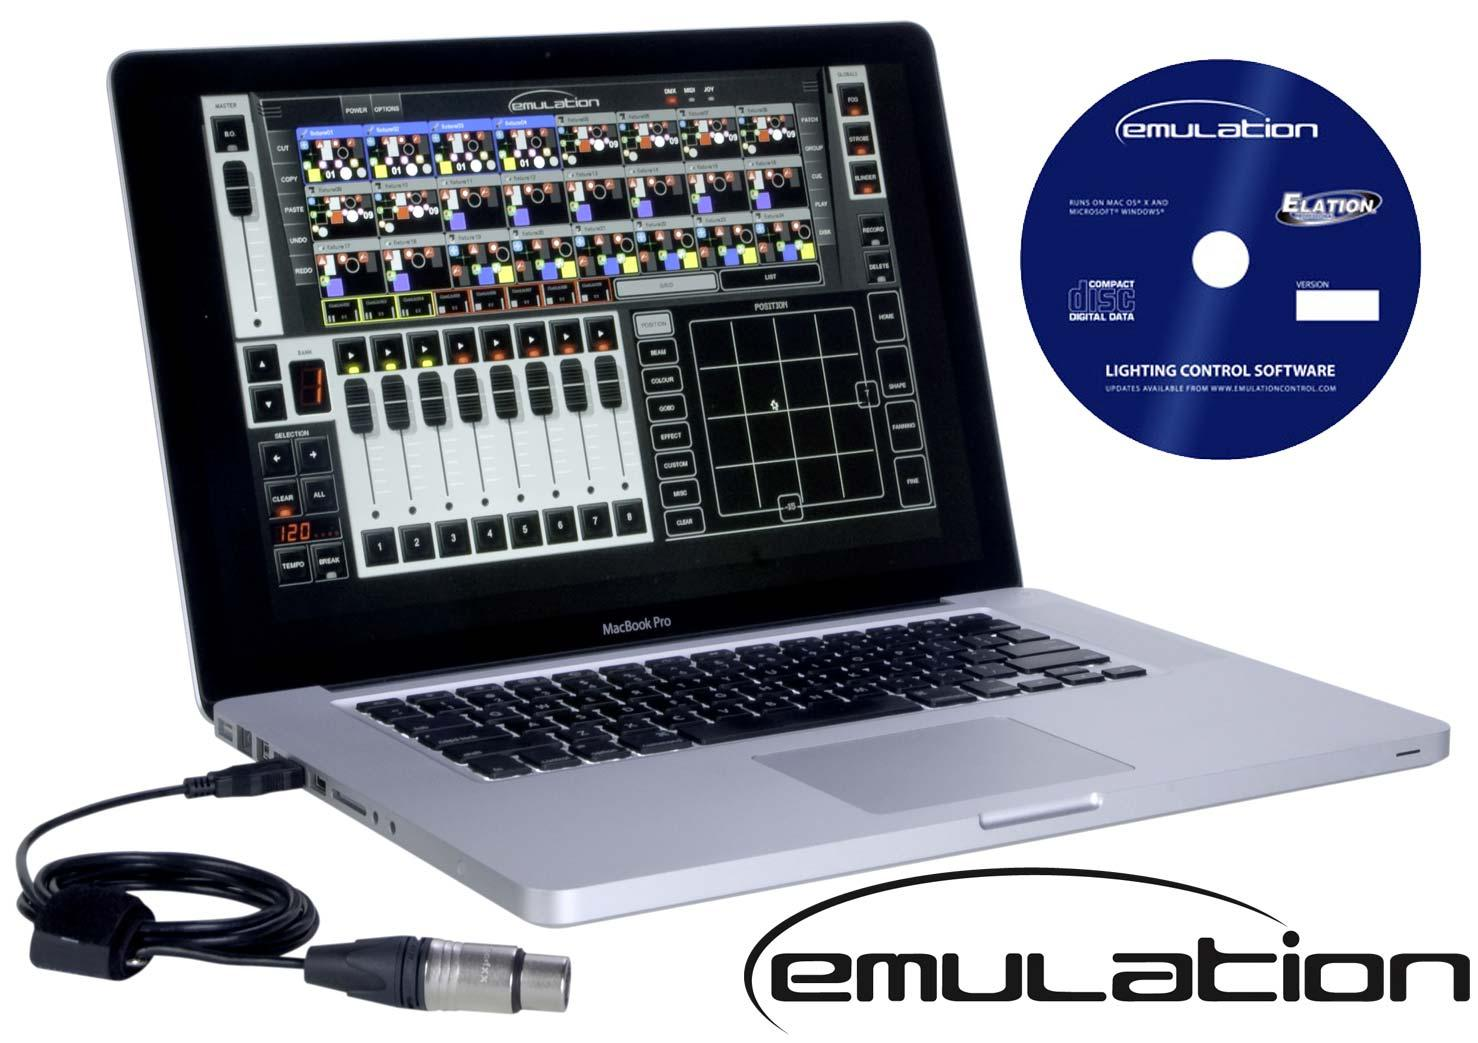 elation emulation dmx software w usb dmx cable pc mac. Black Bedroom Furniture Sets. Home Design Ideas